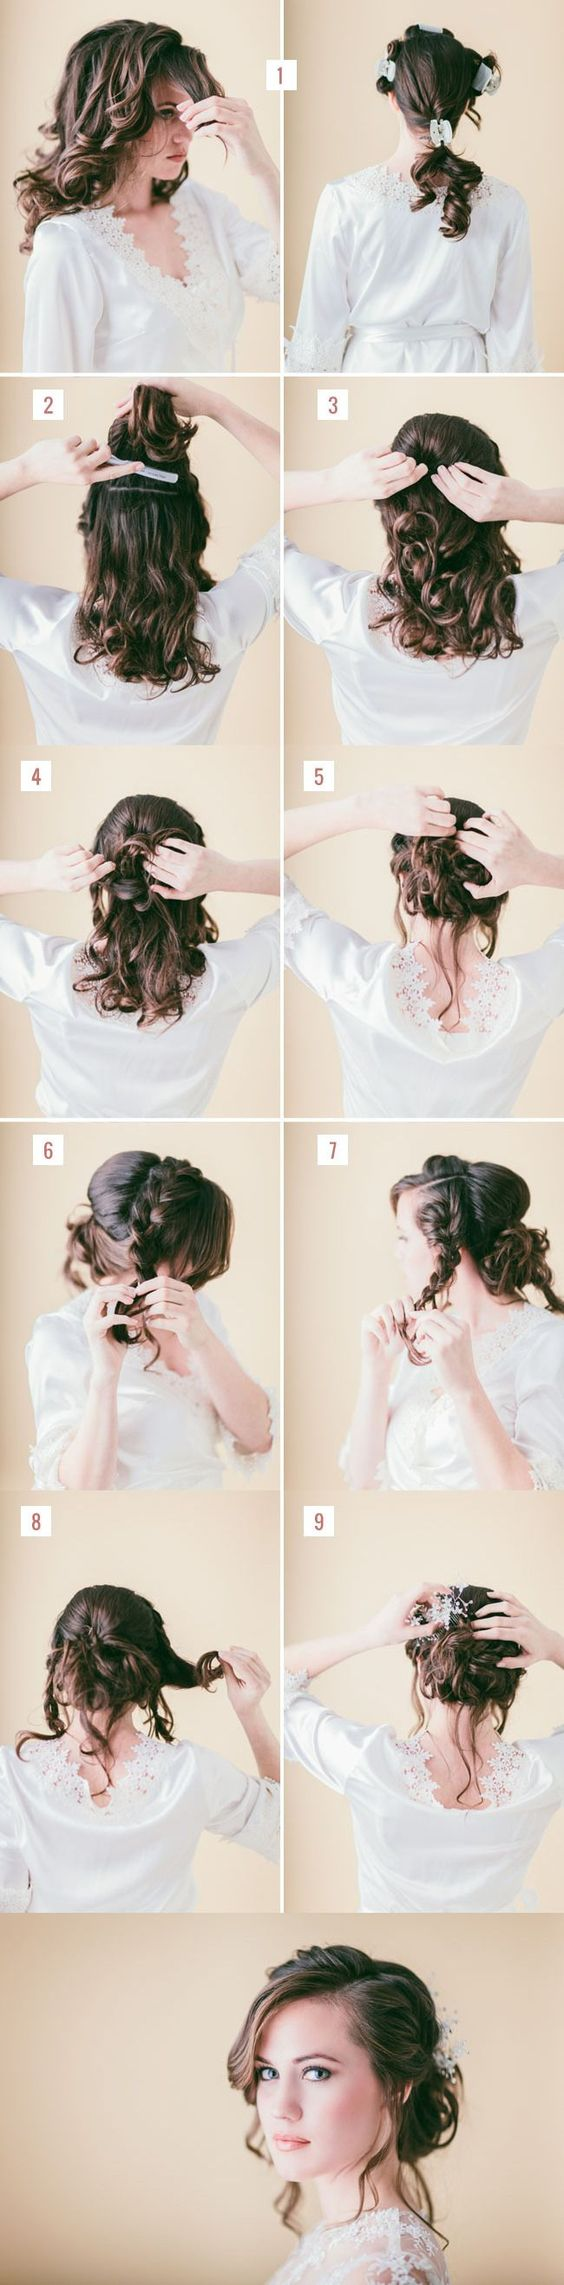 Hair Tutorial: Loose Braided Updo | Updo tutorial, Updo and Prom